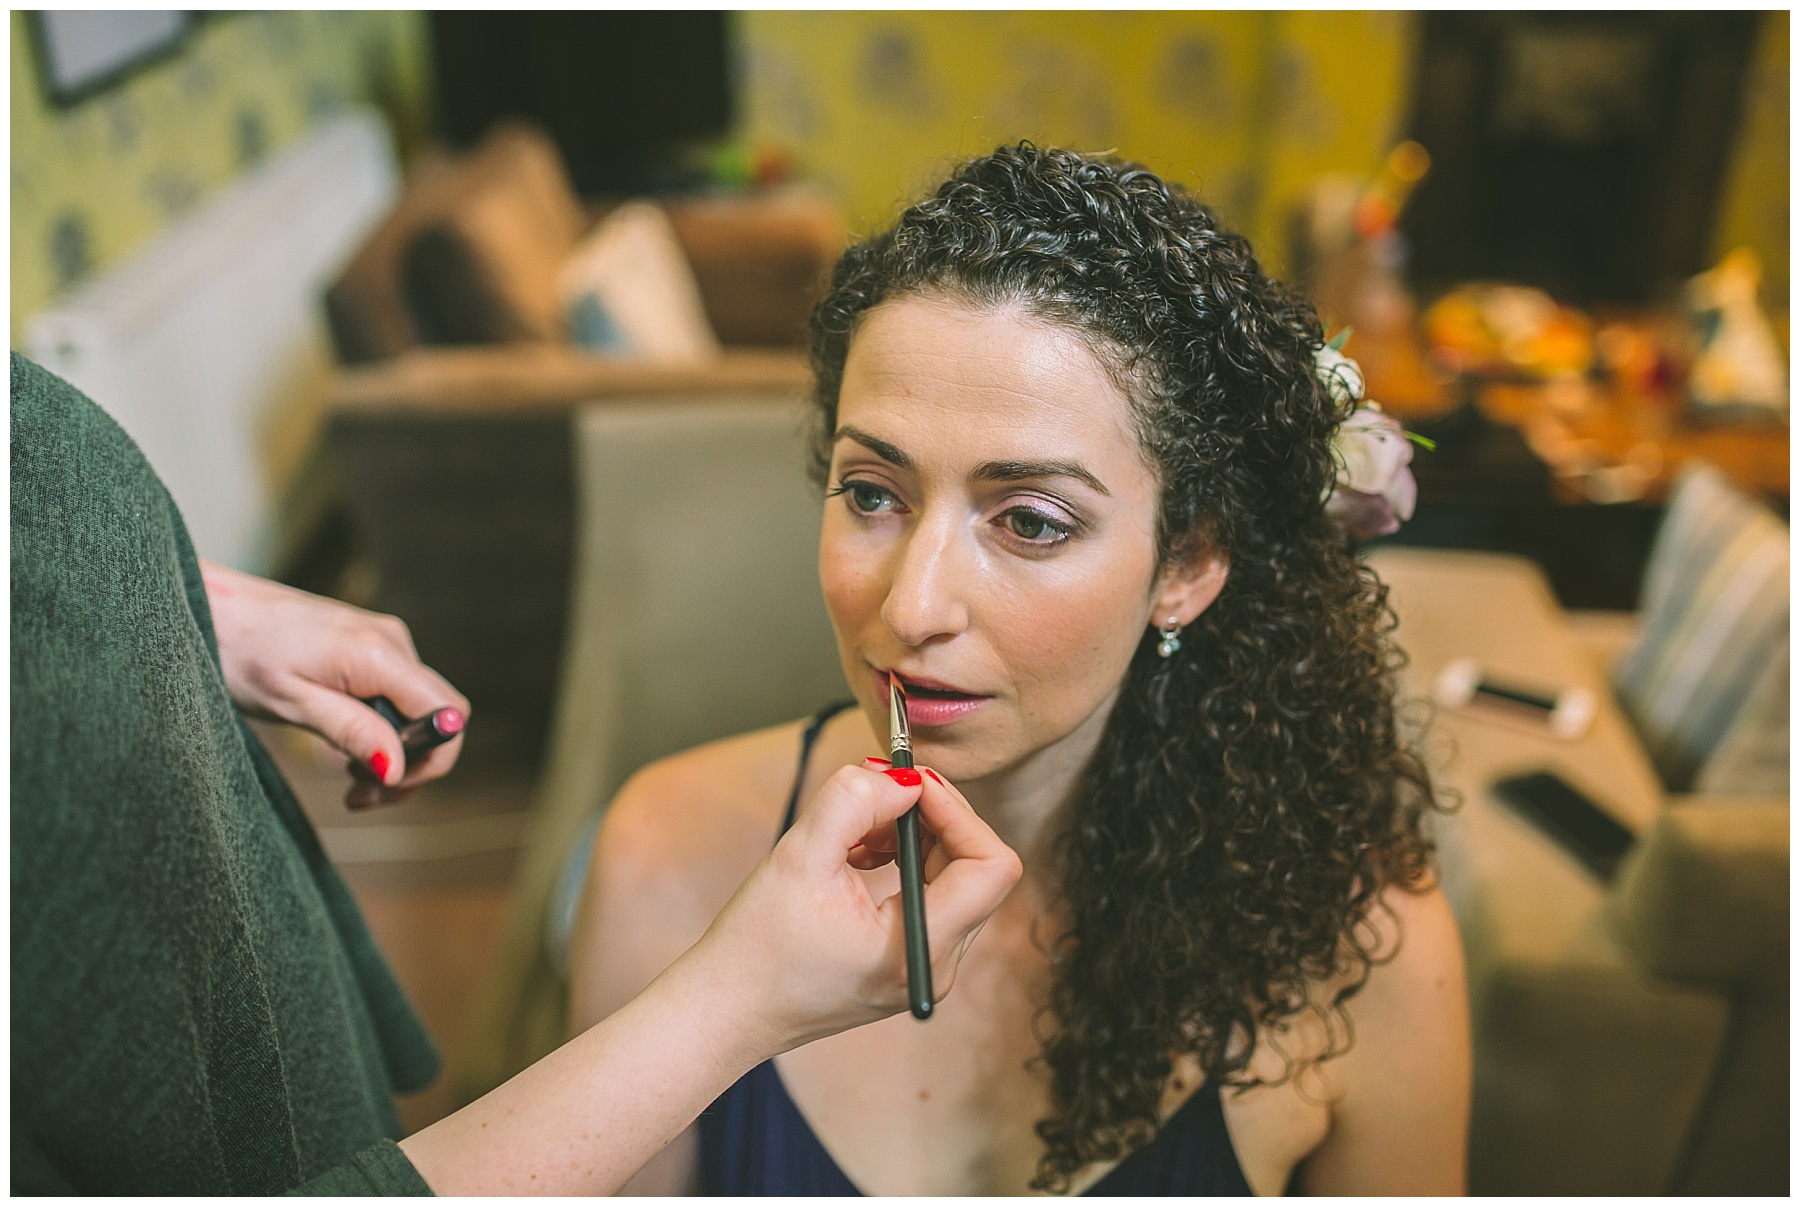 bridal make up being applied